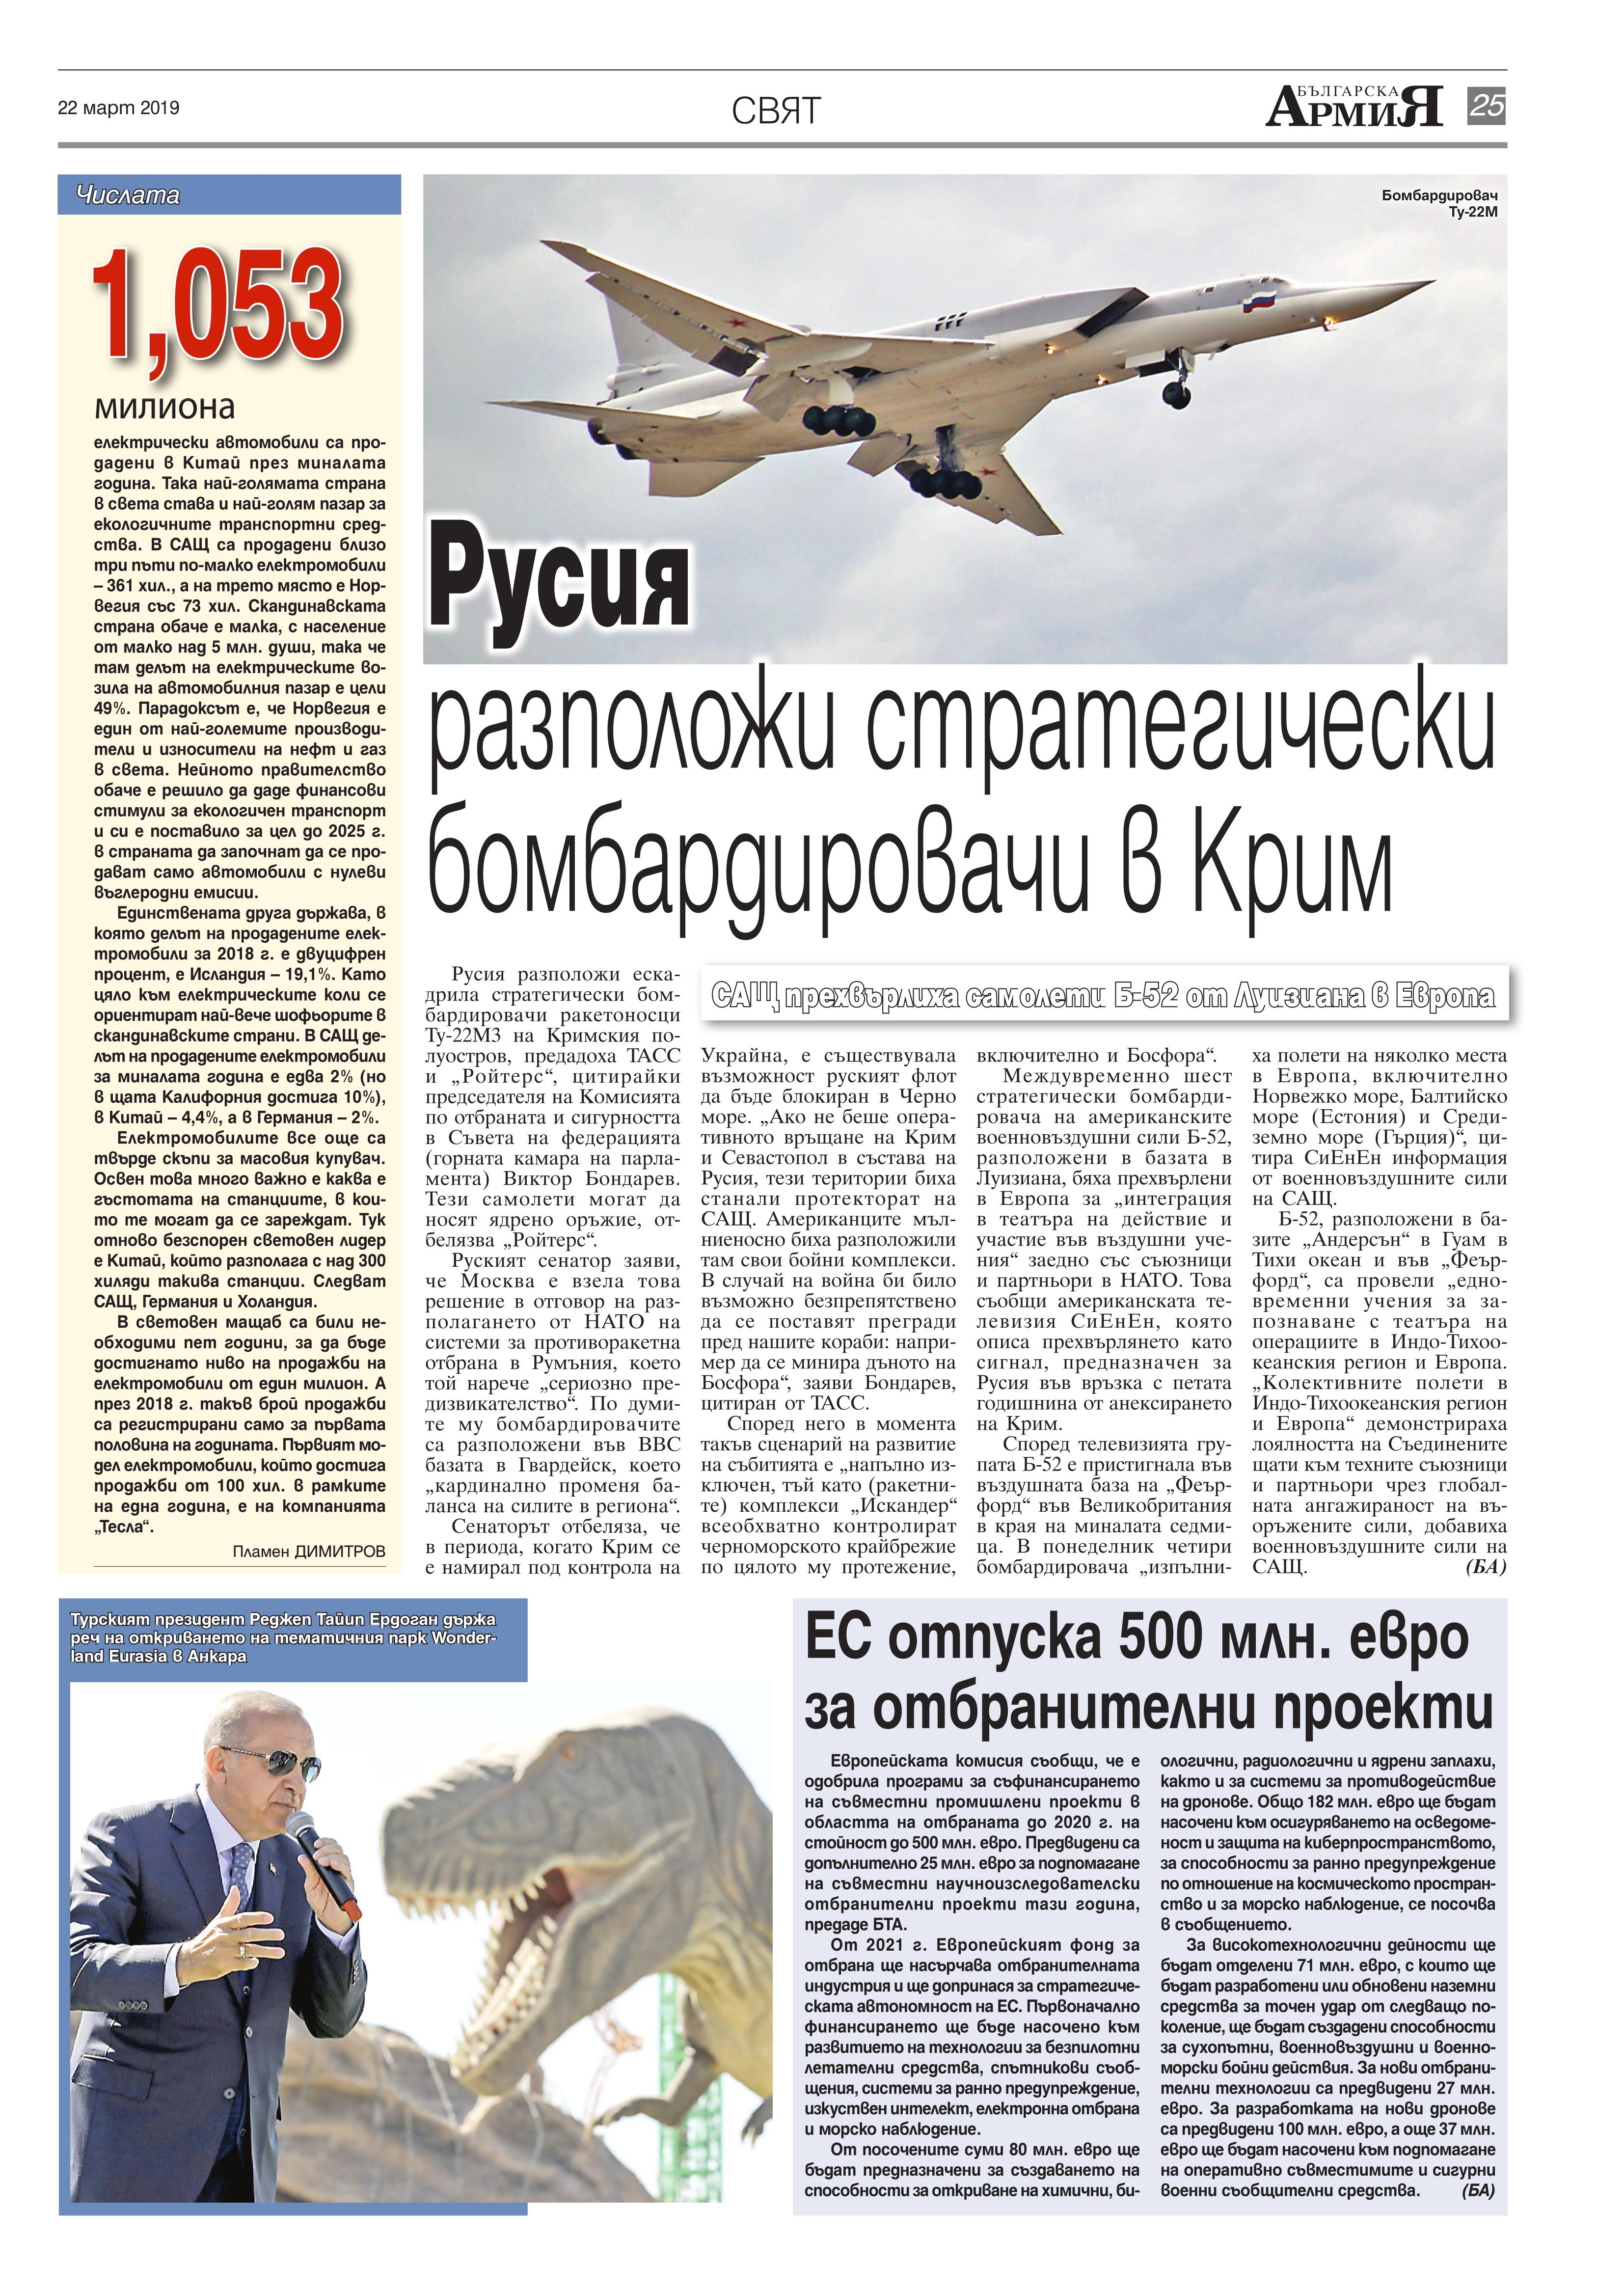 https://www.armymedia.bg/wp-content/uploads/2015/06/25.page1_-75.jpg